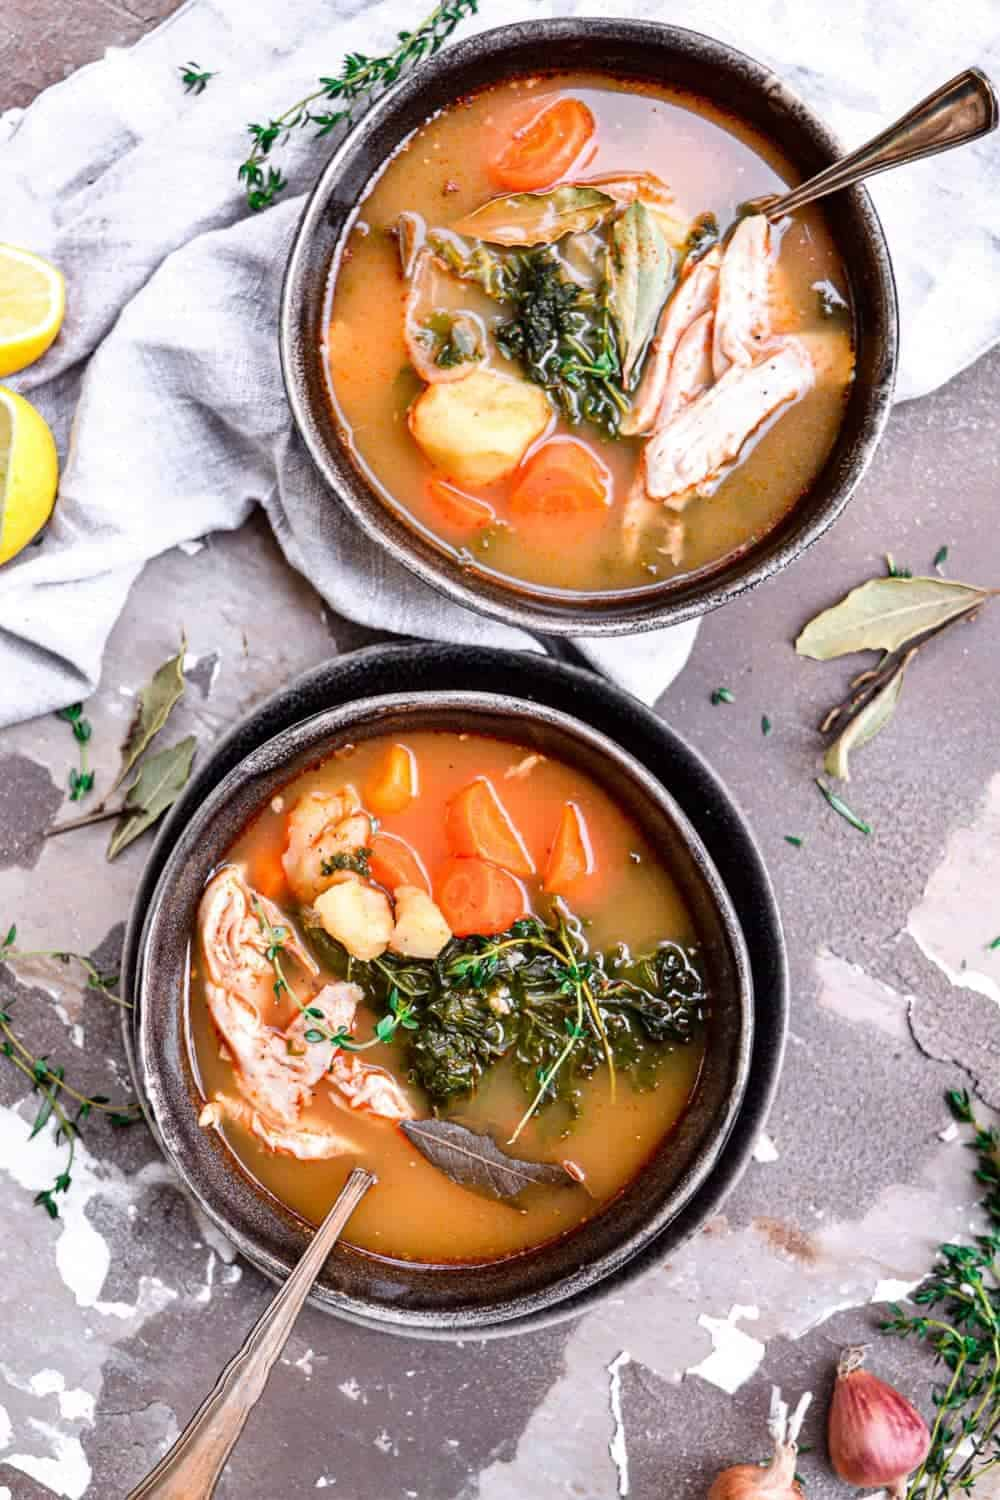 Chicken soup in bowls with spoons